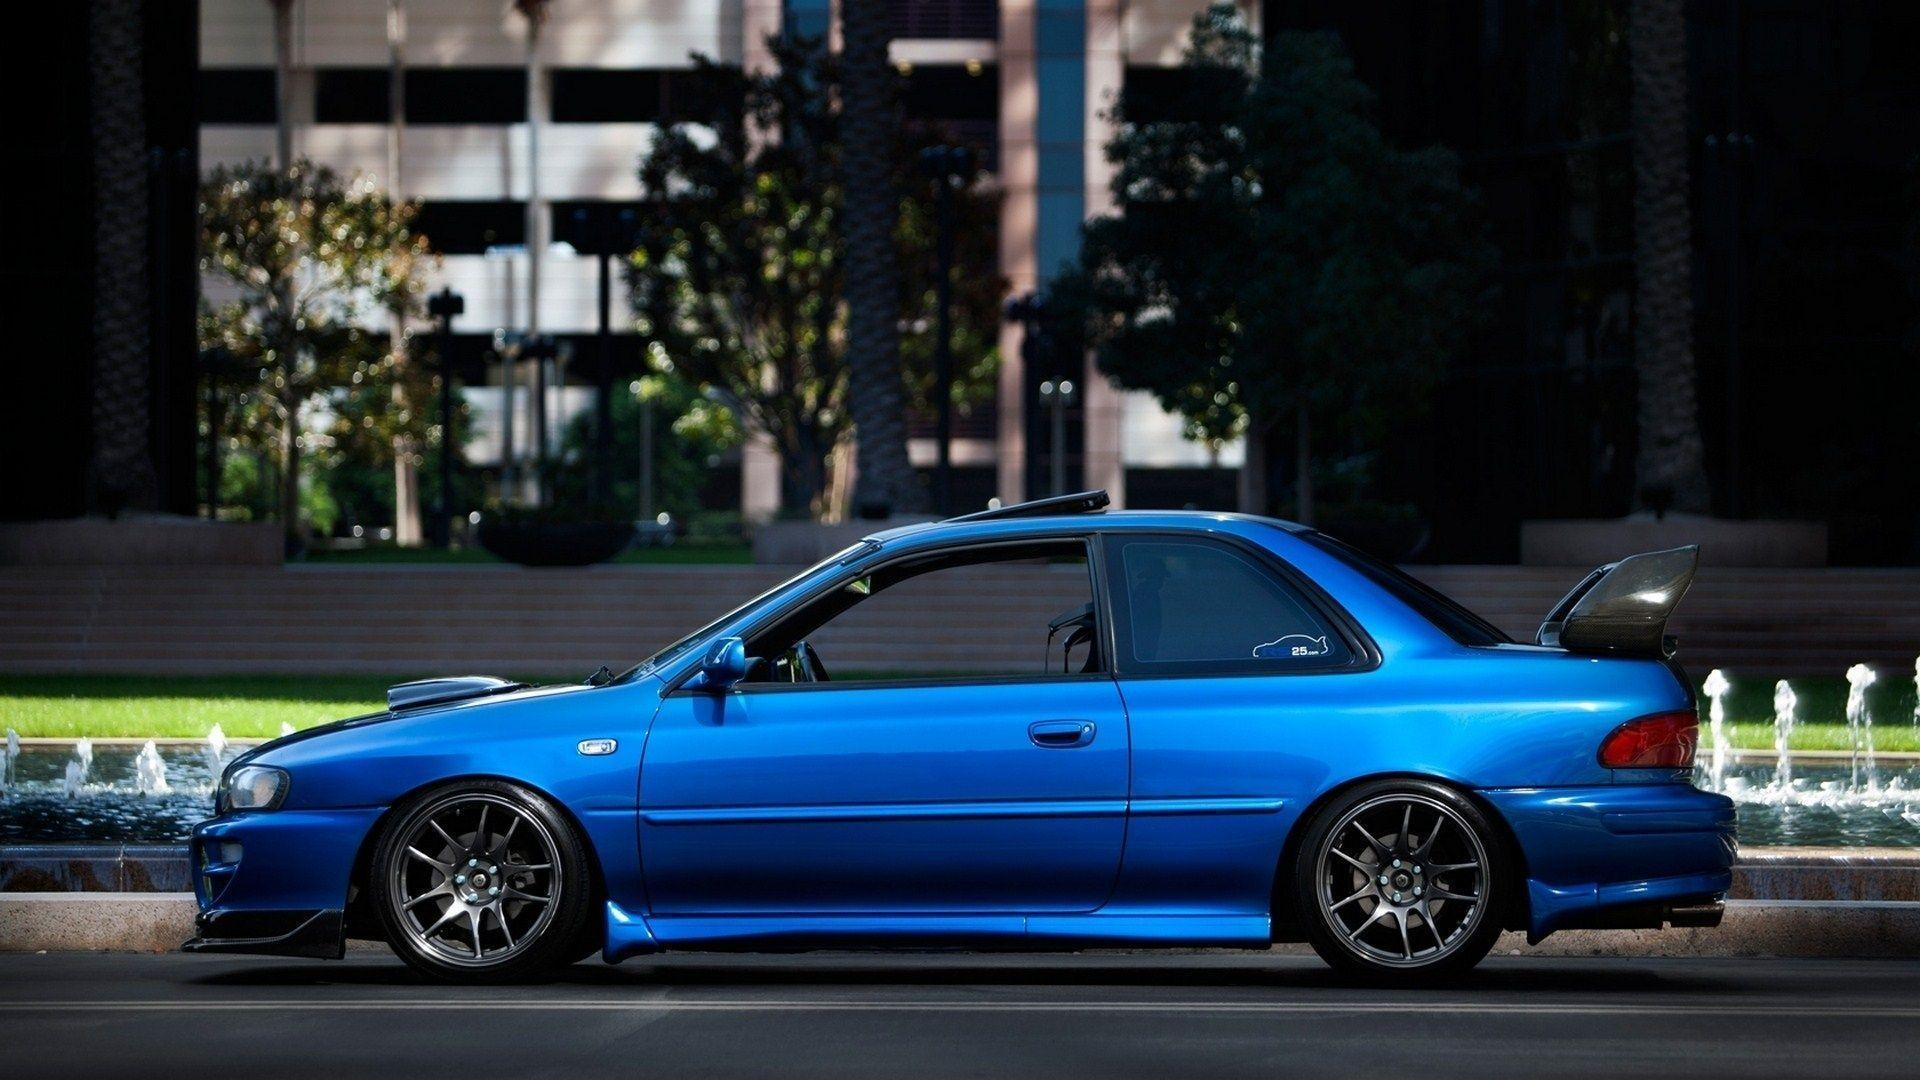 Wrx Sti 0 60 >> Subaru Impreza Wallpapers - Wallpaper Cave